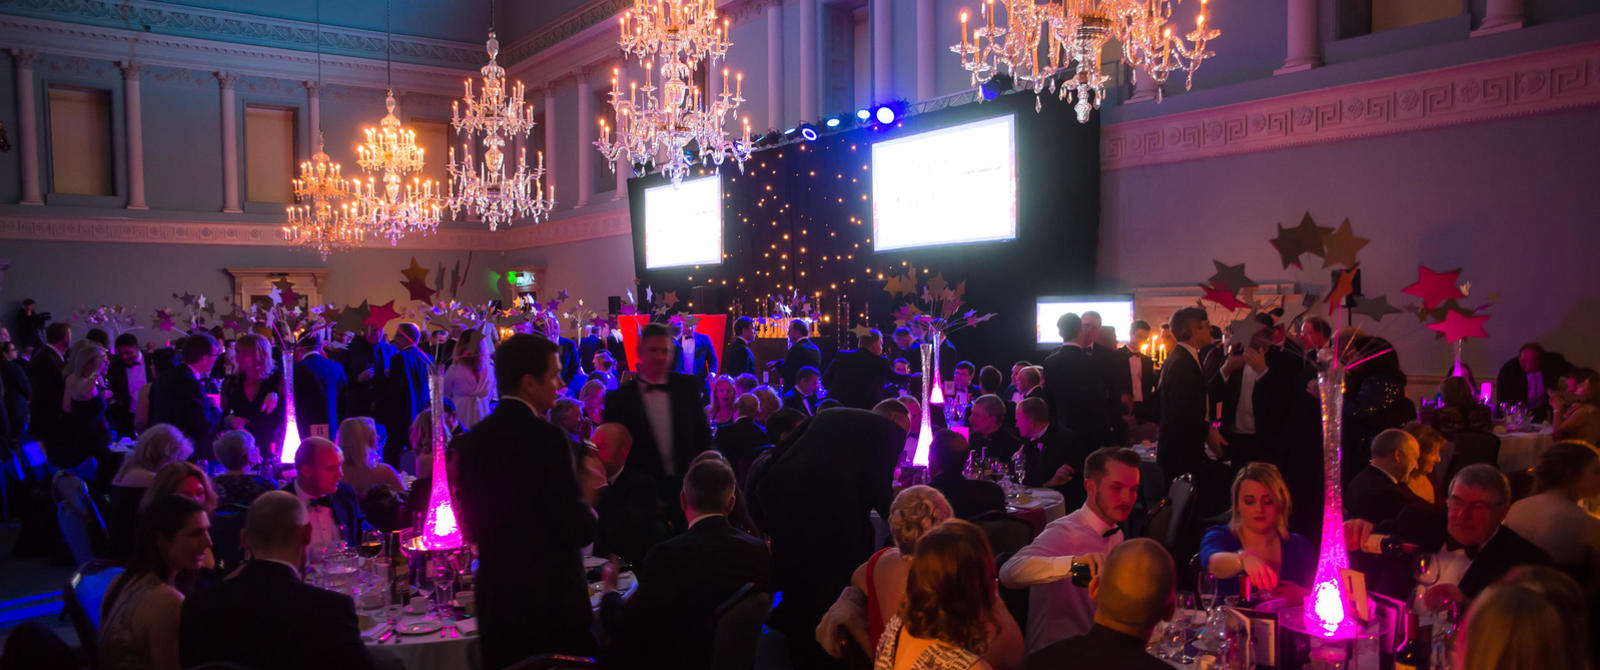 Image: Bath Life Awards in the Ball Room, Paolo Ferla